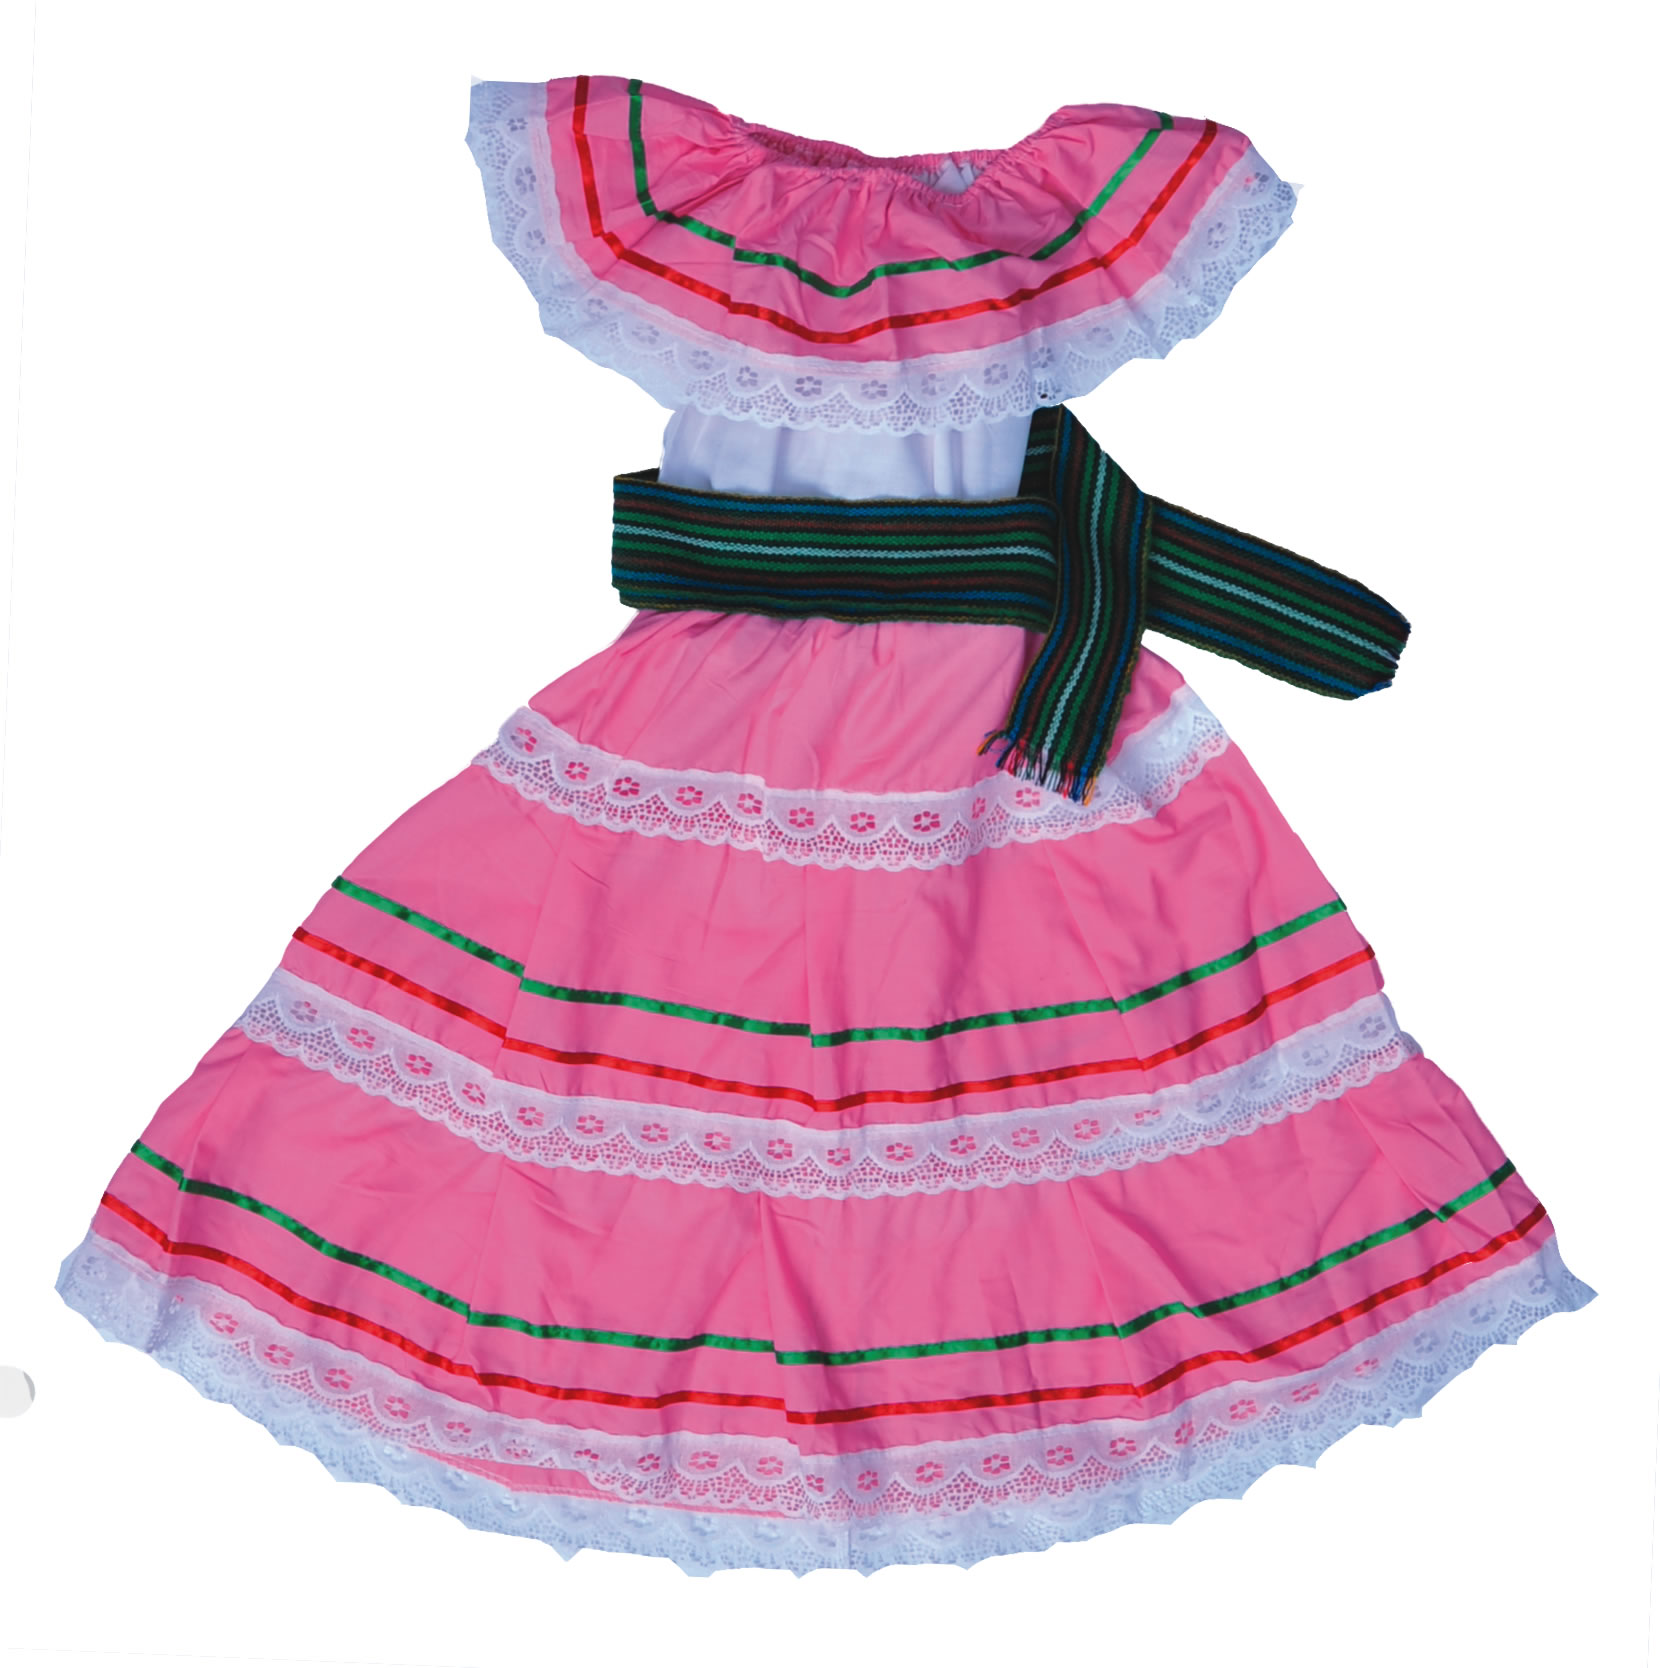 TRADITIONAL MEXICAN DANCE DRESS FOR REHEARSAL Vestido Tradicional ...